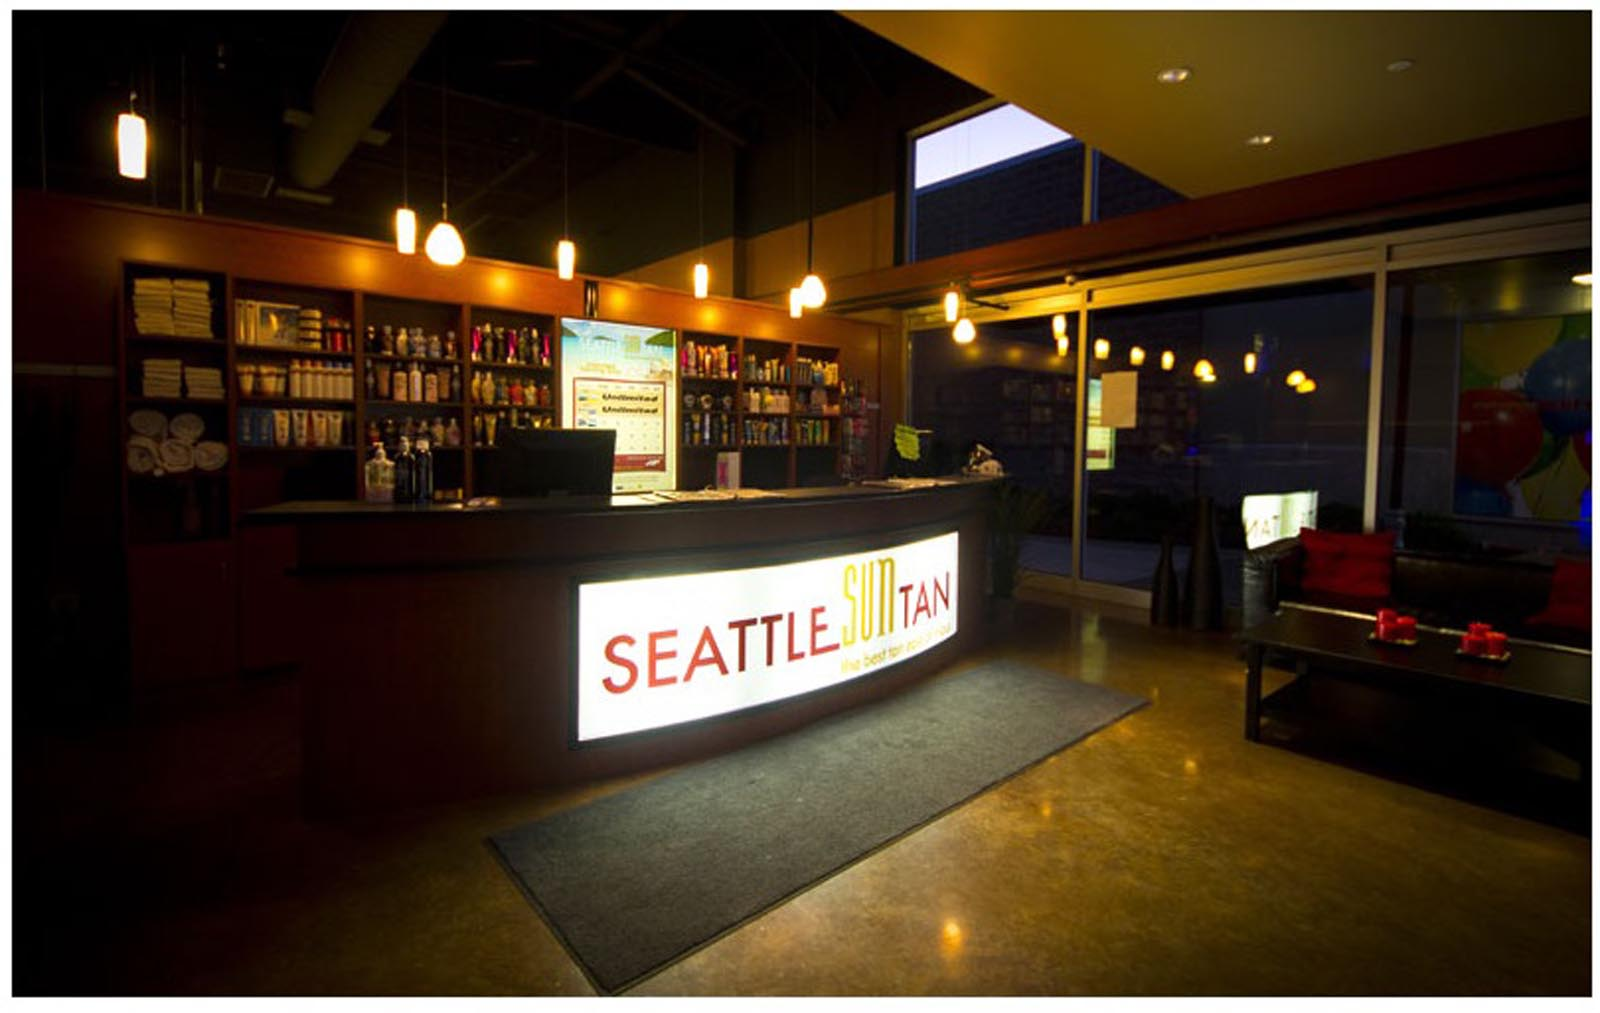 Seattle SunTan Renton front desk and waiting area